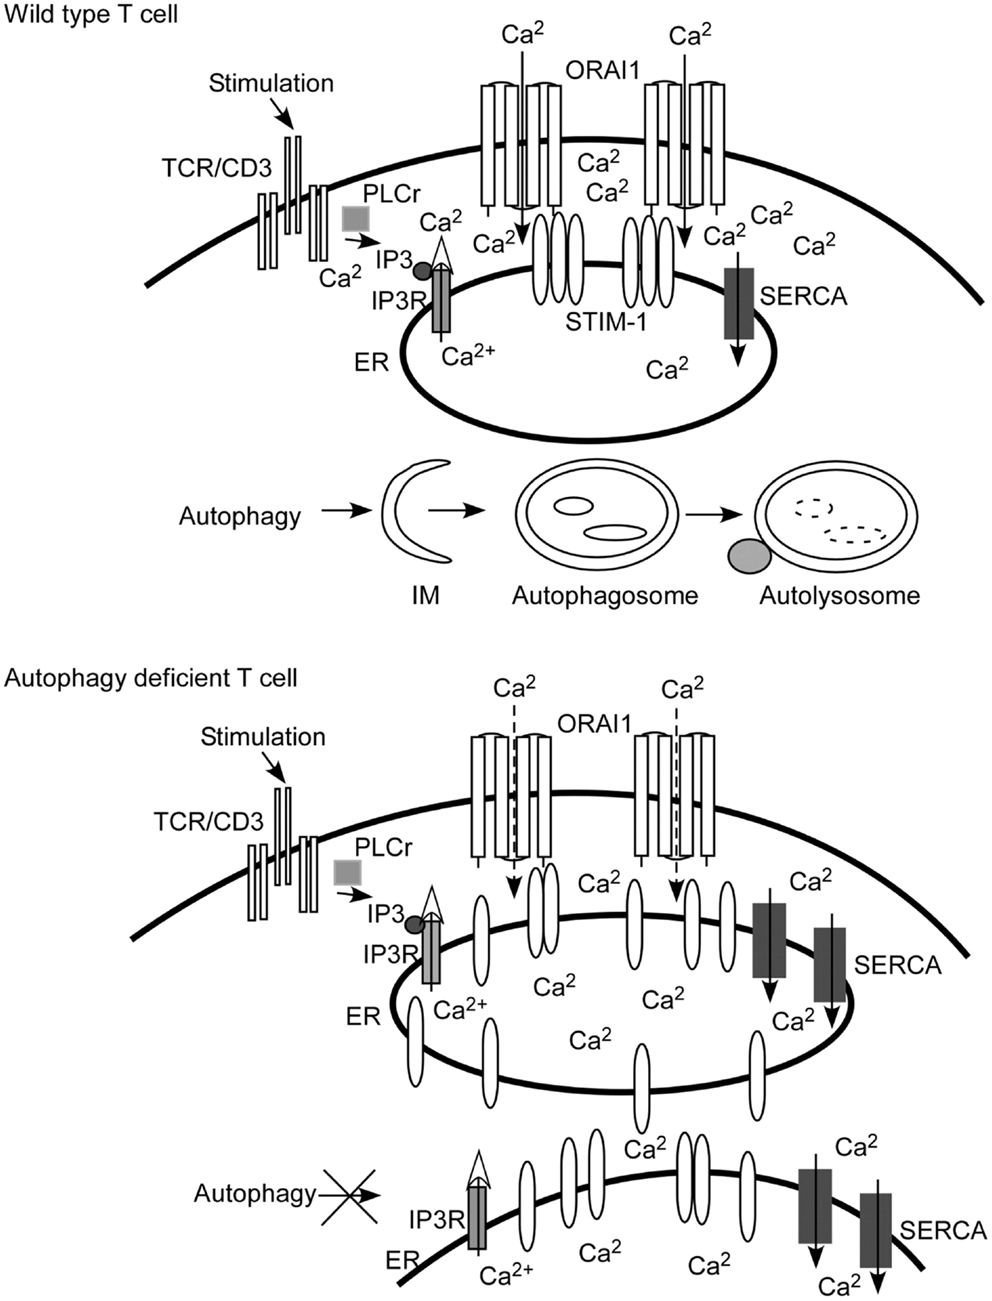 Frontiers Autophagy A Novel Pathway To Regulate Calcium Diagram Motorcycle Engine Art